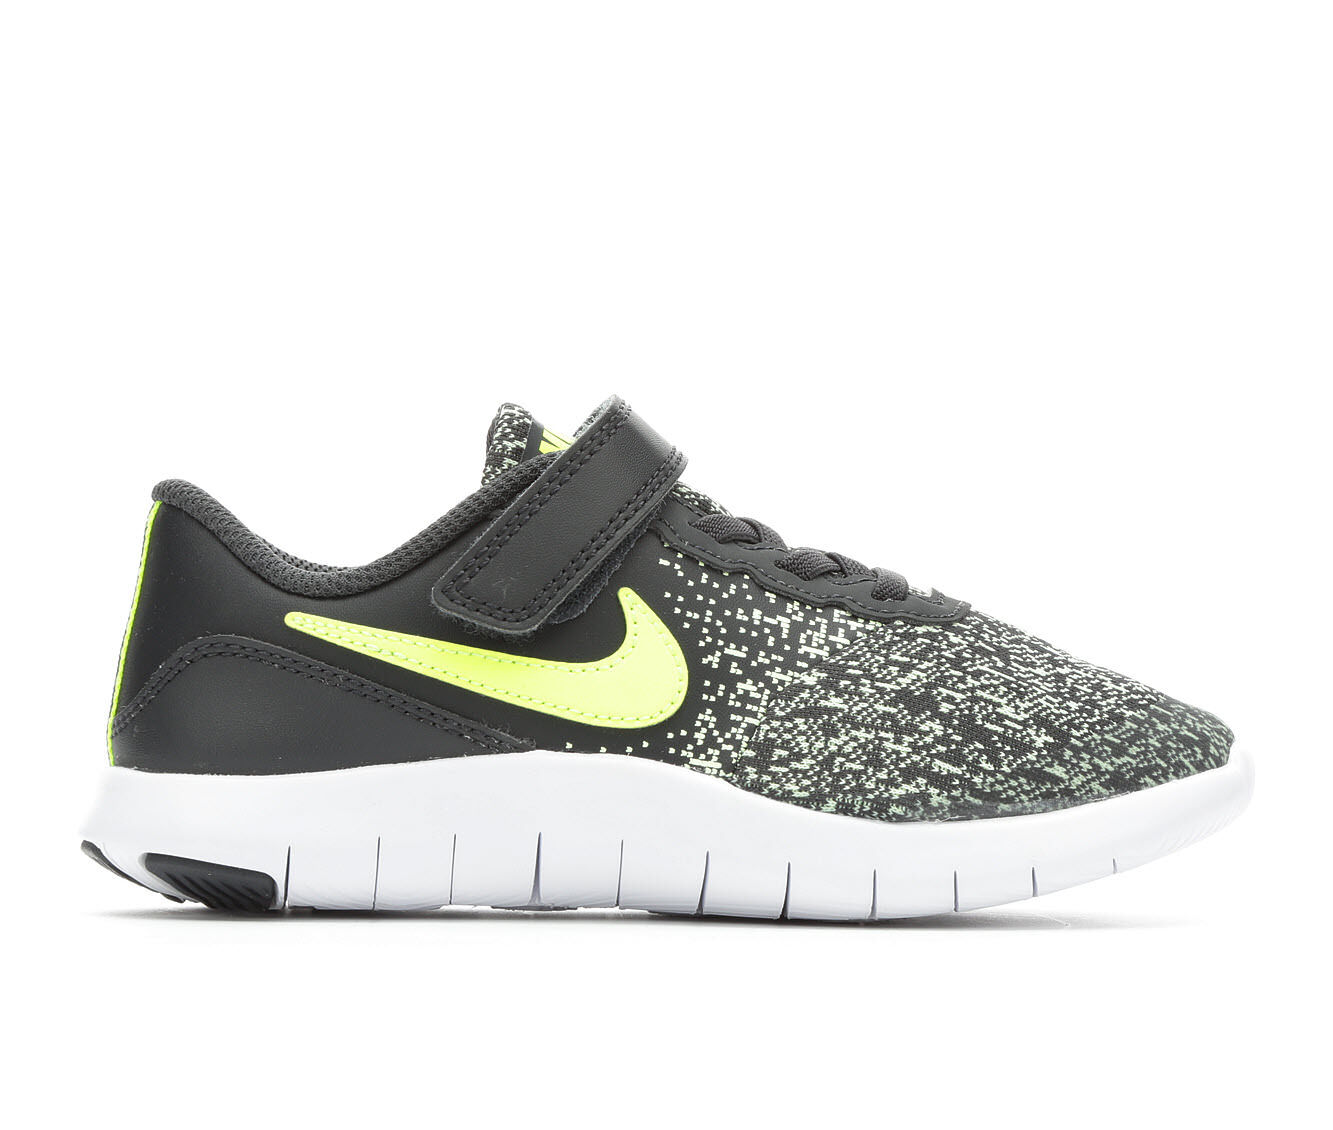 Boys' Nike Flex Contact Velcro 10.5-3 Running Shoes